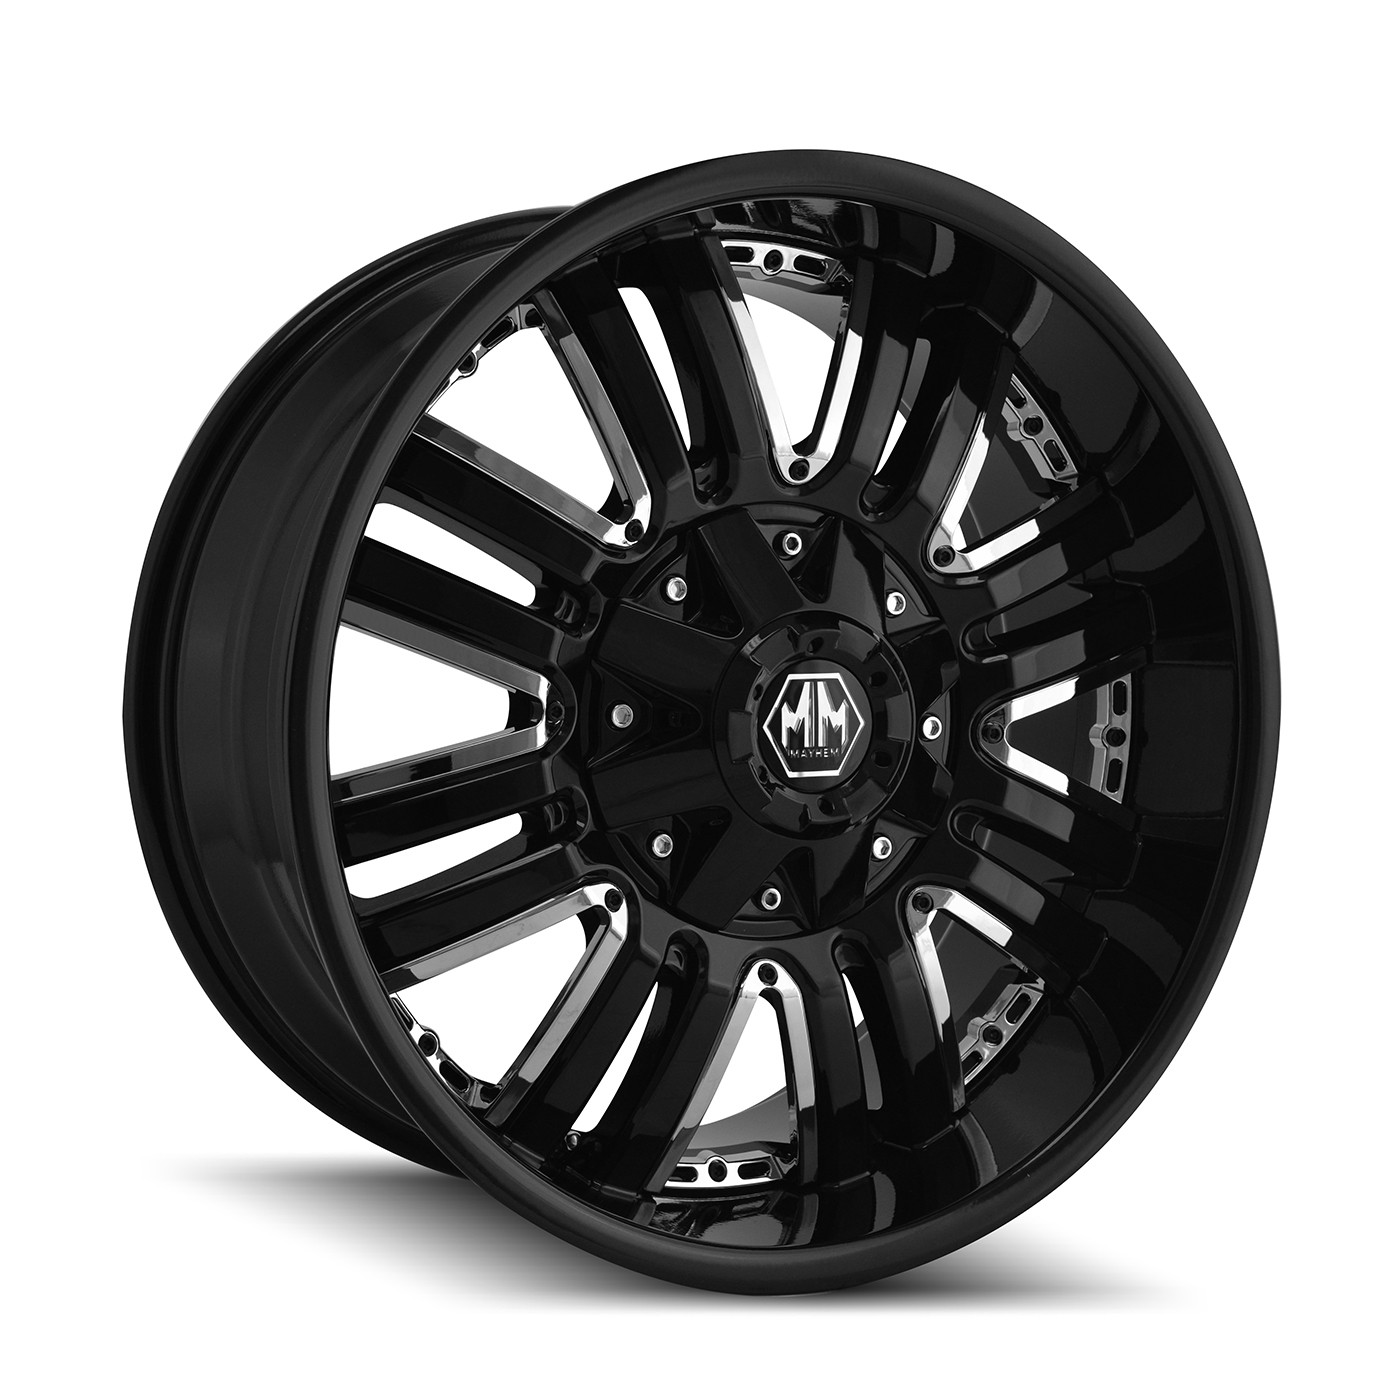 truck wheel specials  chrome  black machined dayton  tires  tires neace tire